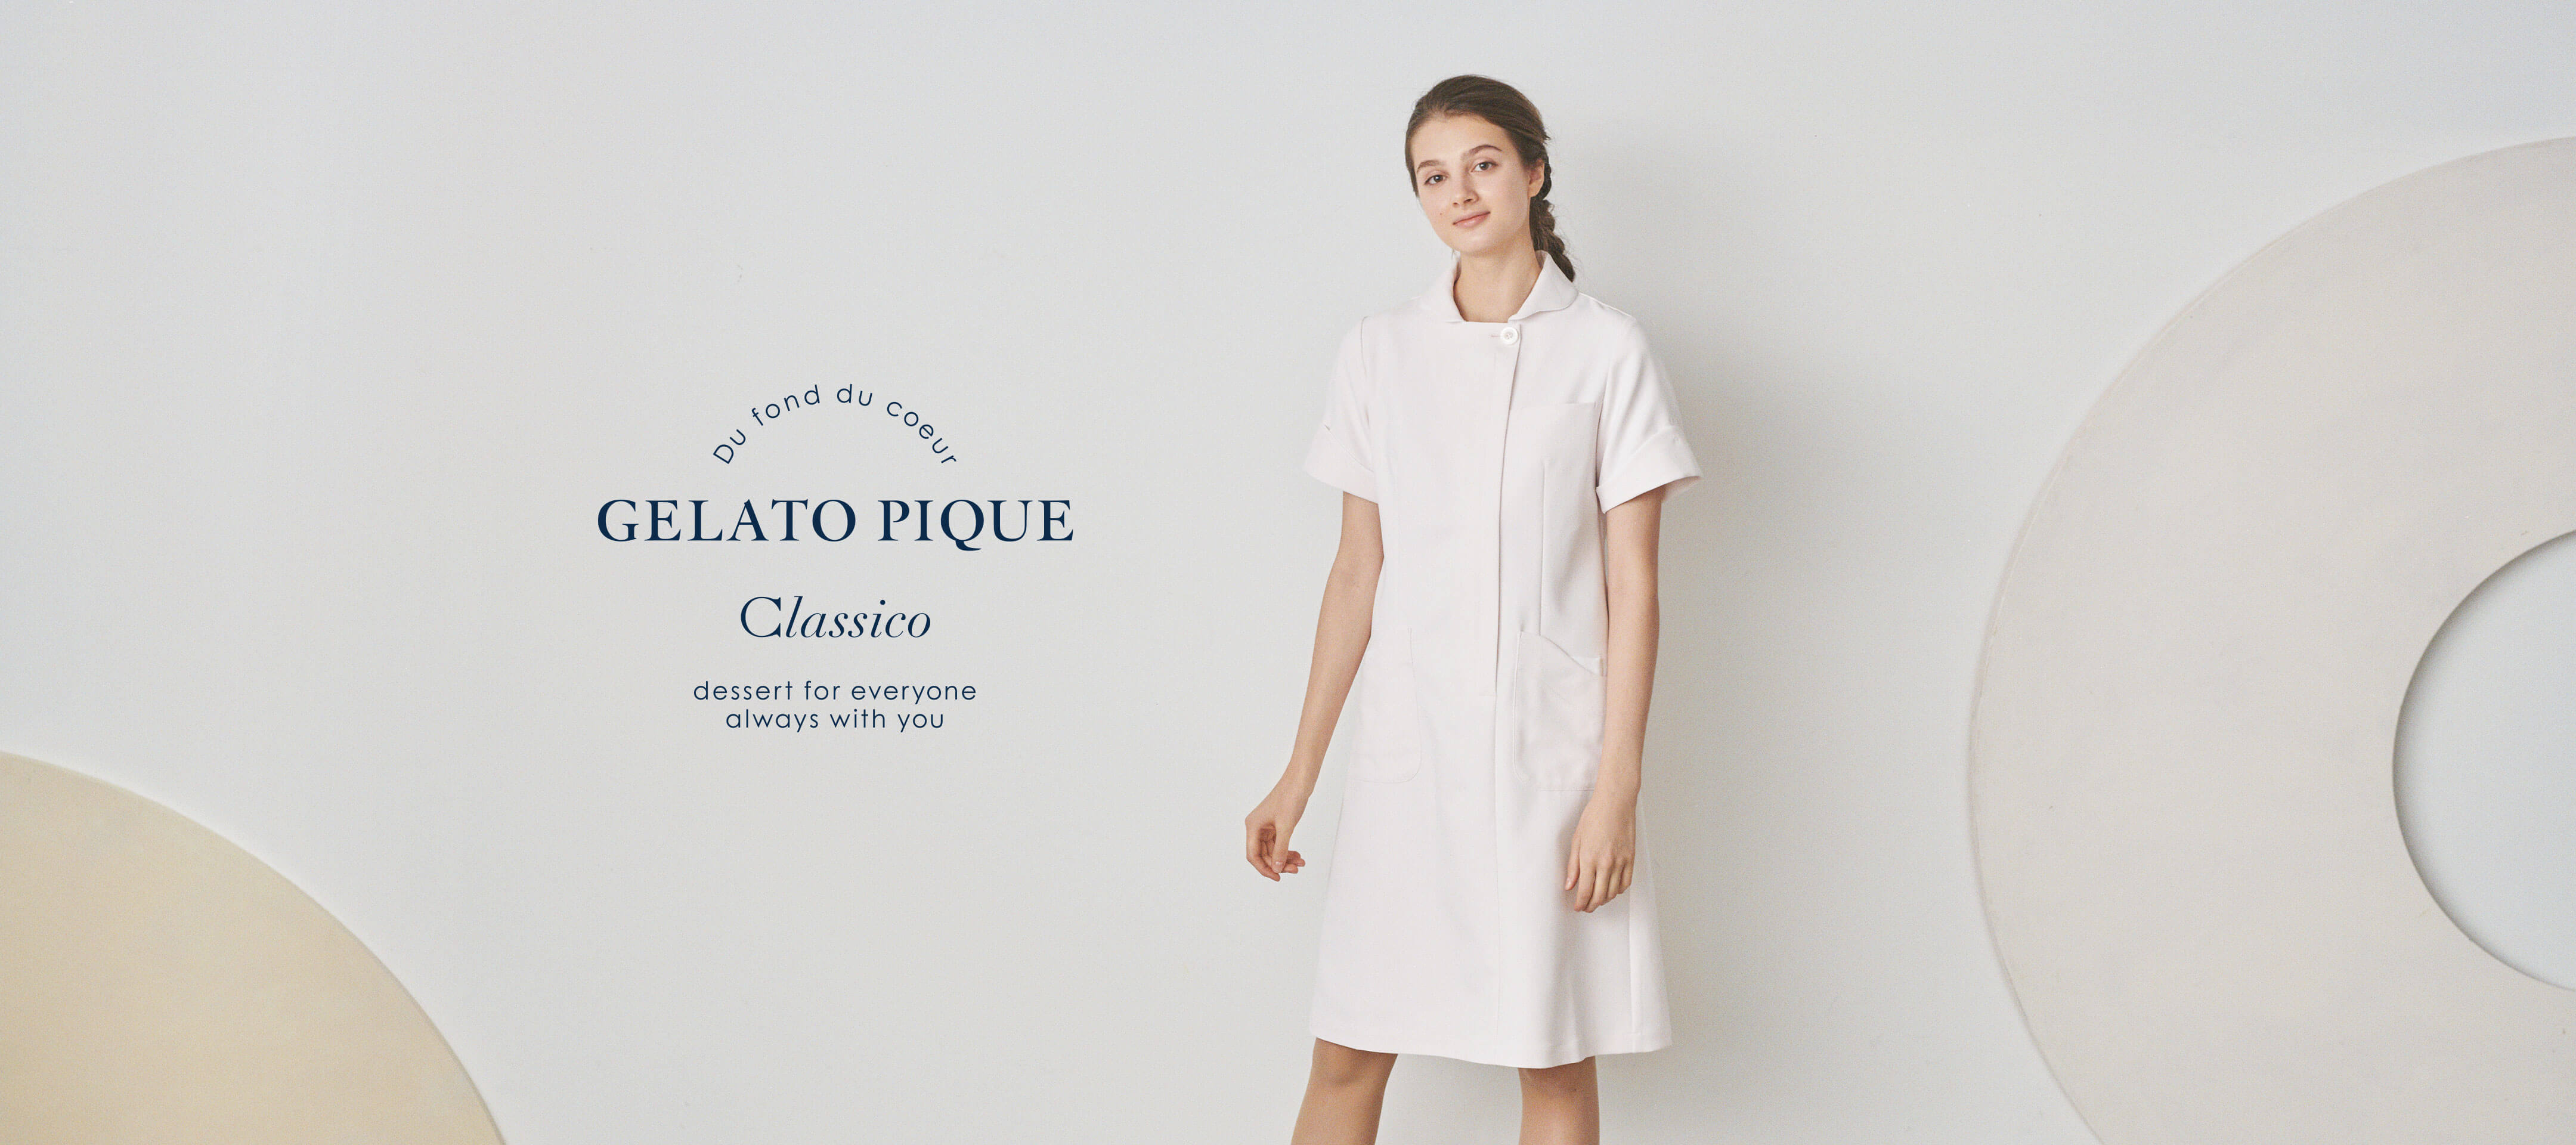 Du fond bu coeur GELATO PIQUE Classico The tailored lab coats